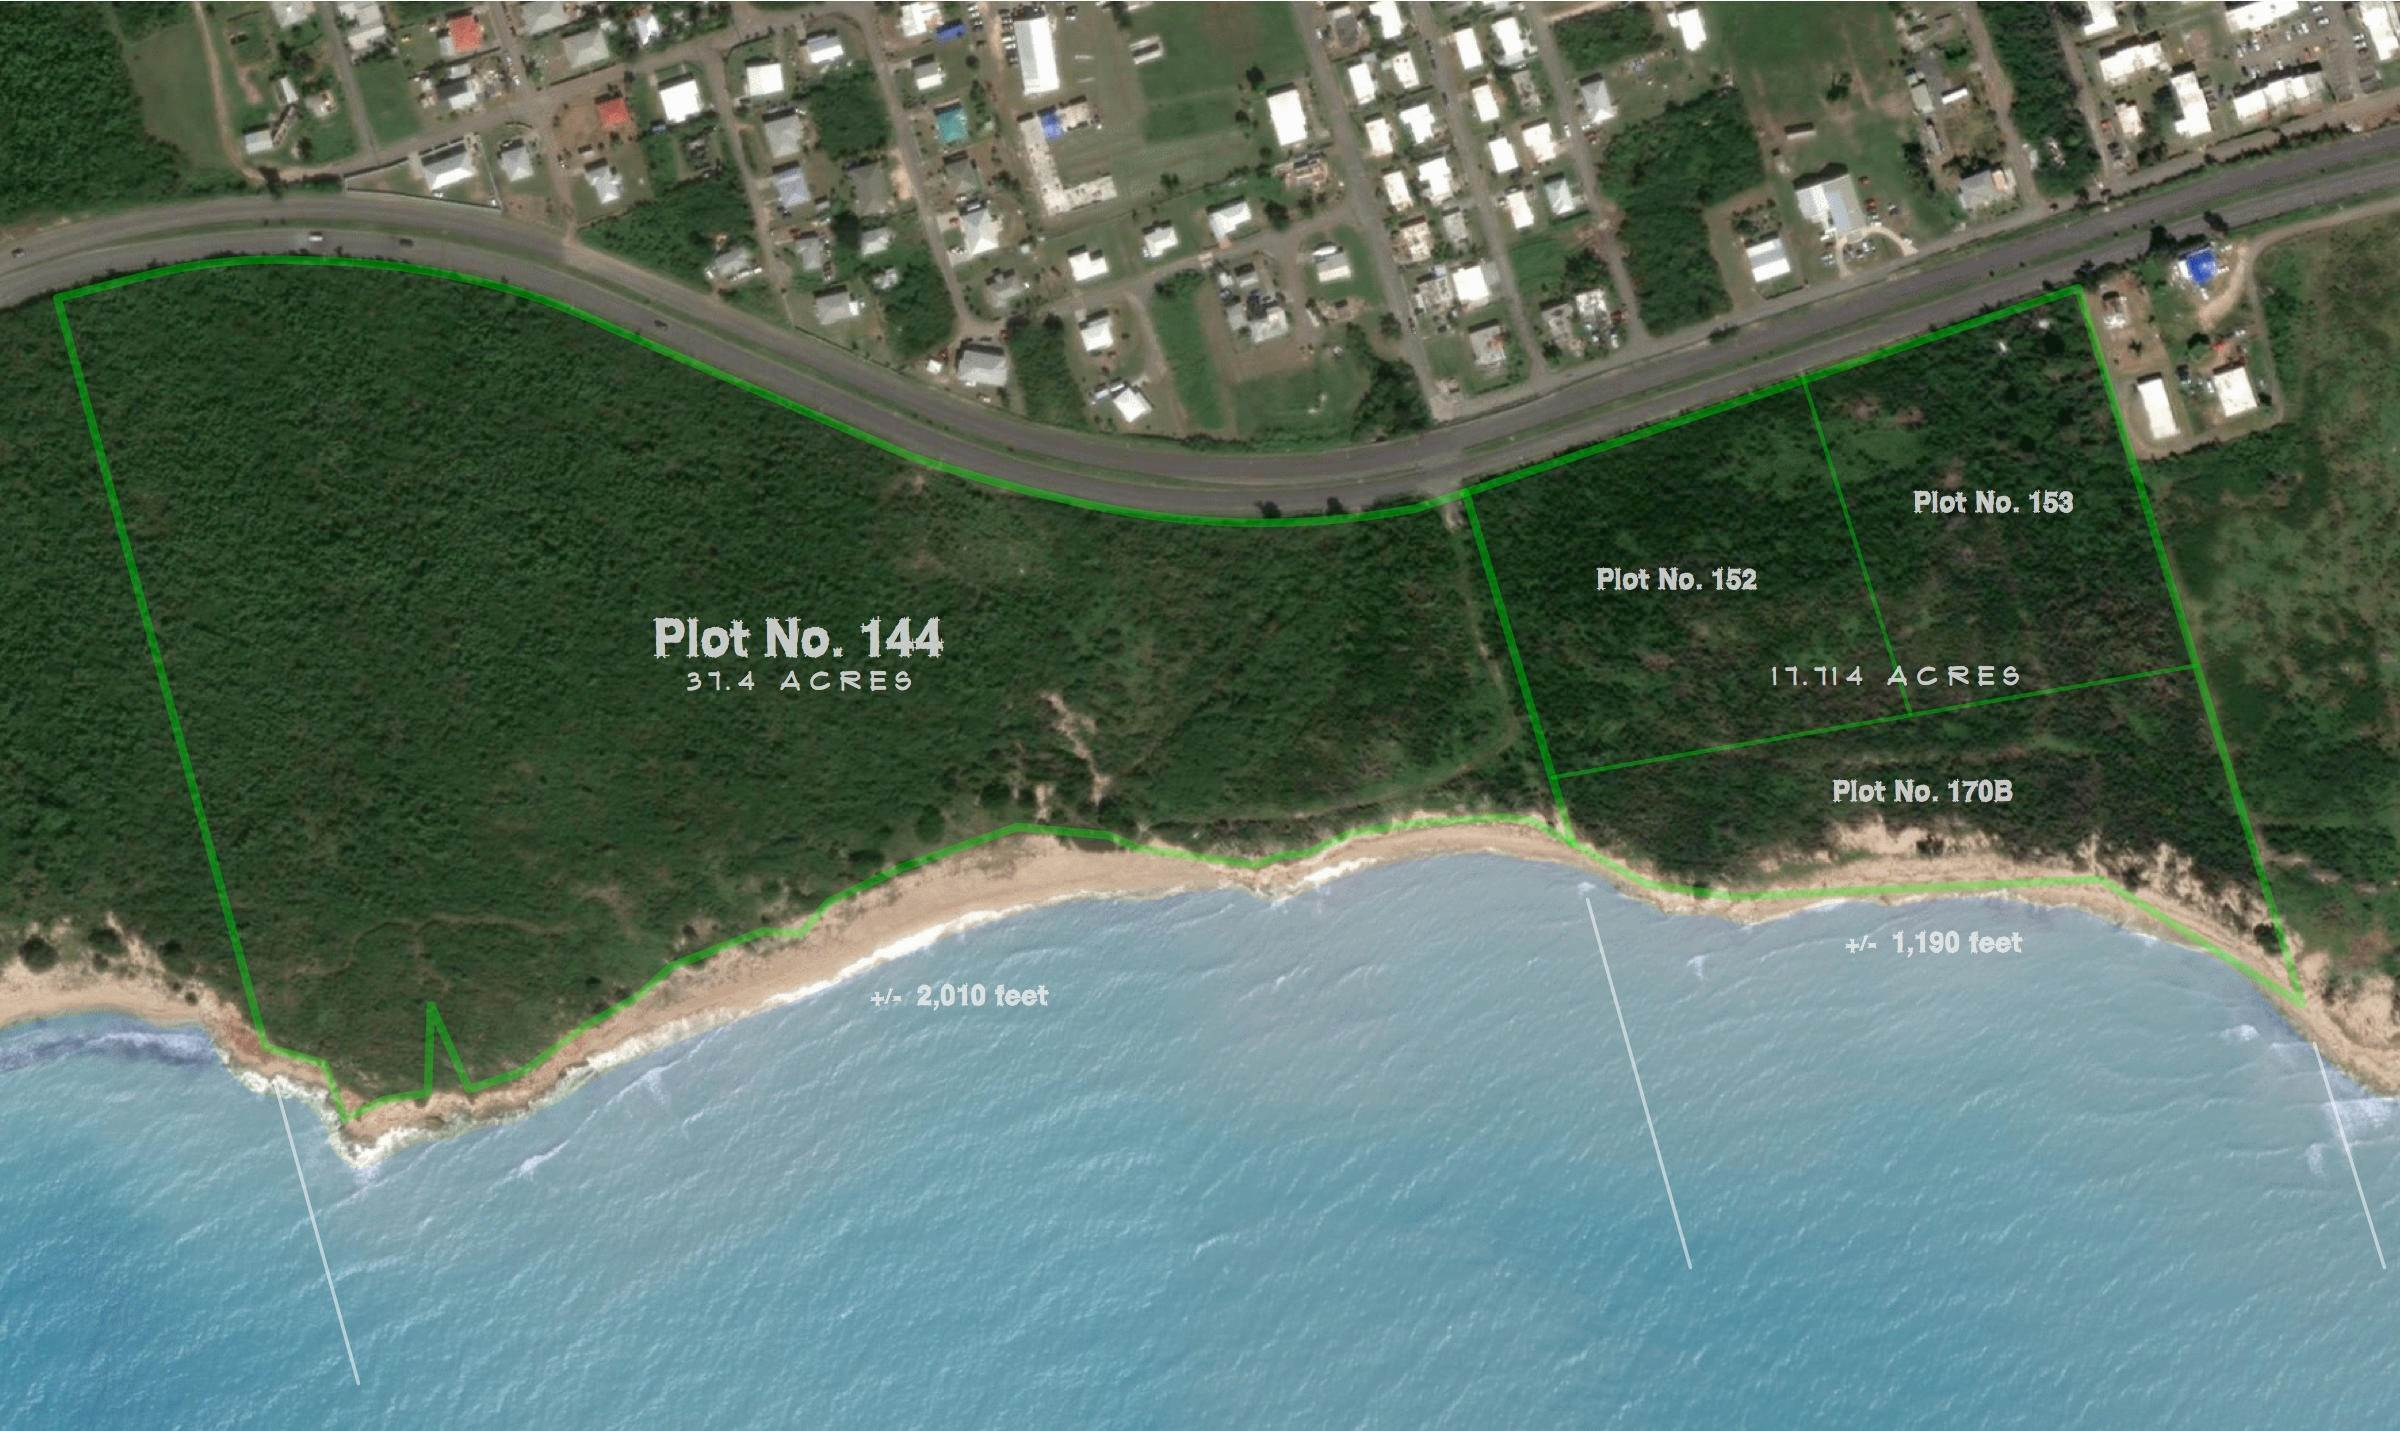 3. Land for Sale at 144 Whim (Two Will) WE St Croix, Virgin Islands 00840 United States Virgin Islands